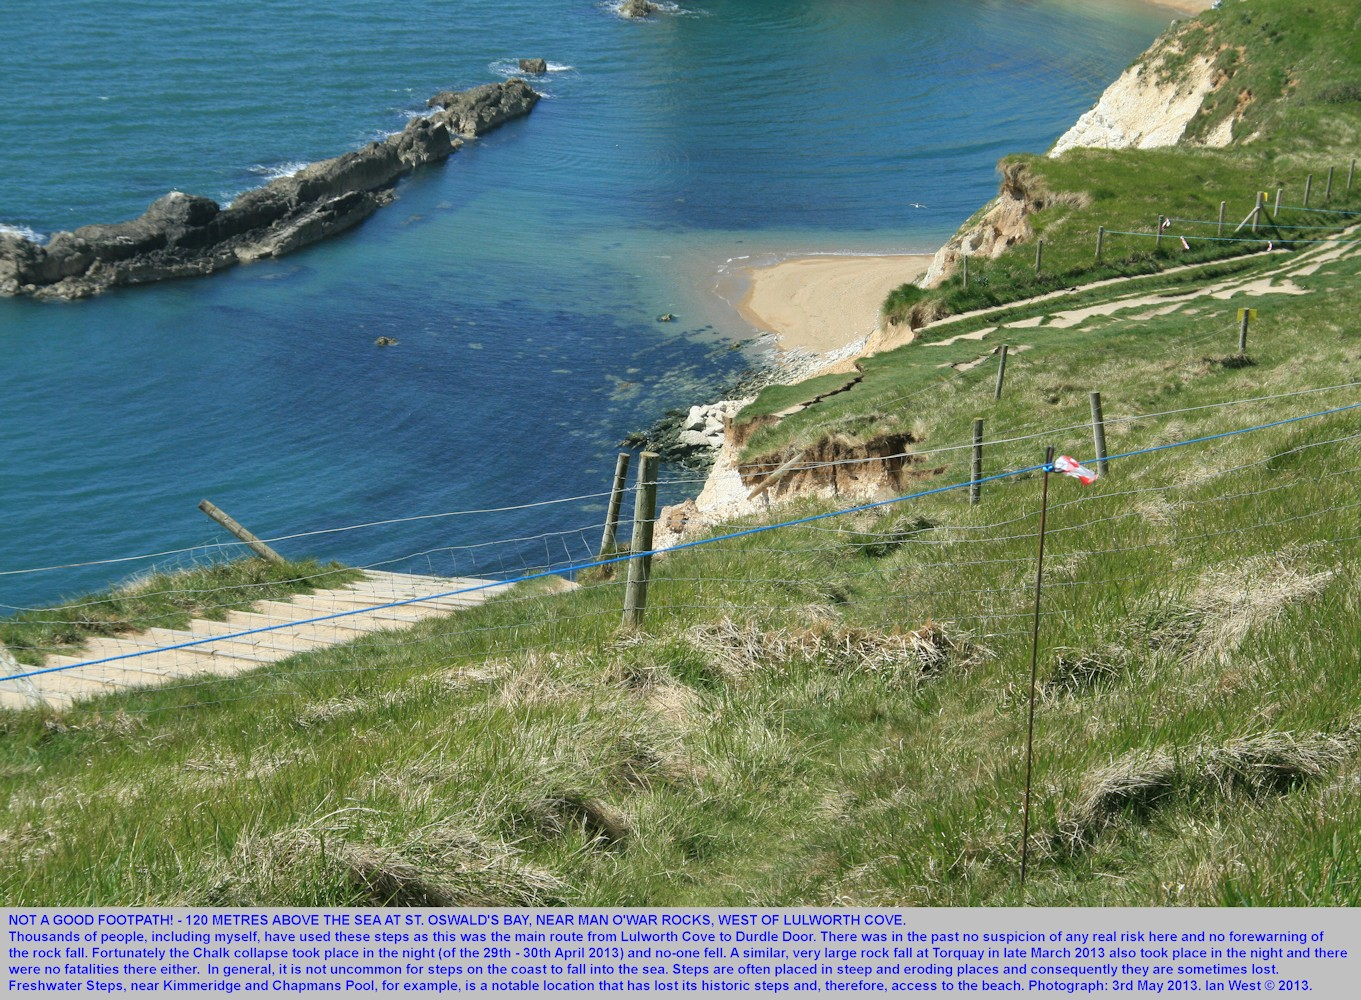 Steps to nowhere at the top of the Chalk rock fall, at St. Oswald's Bay, west of Lulworth Cove, Dorset, 3rd May 2013